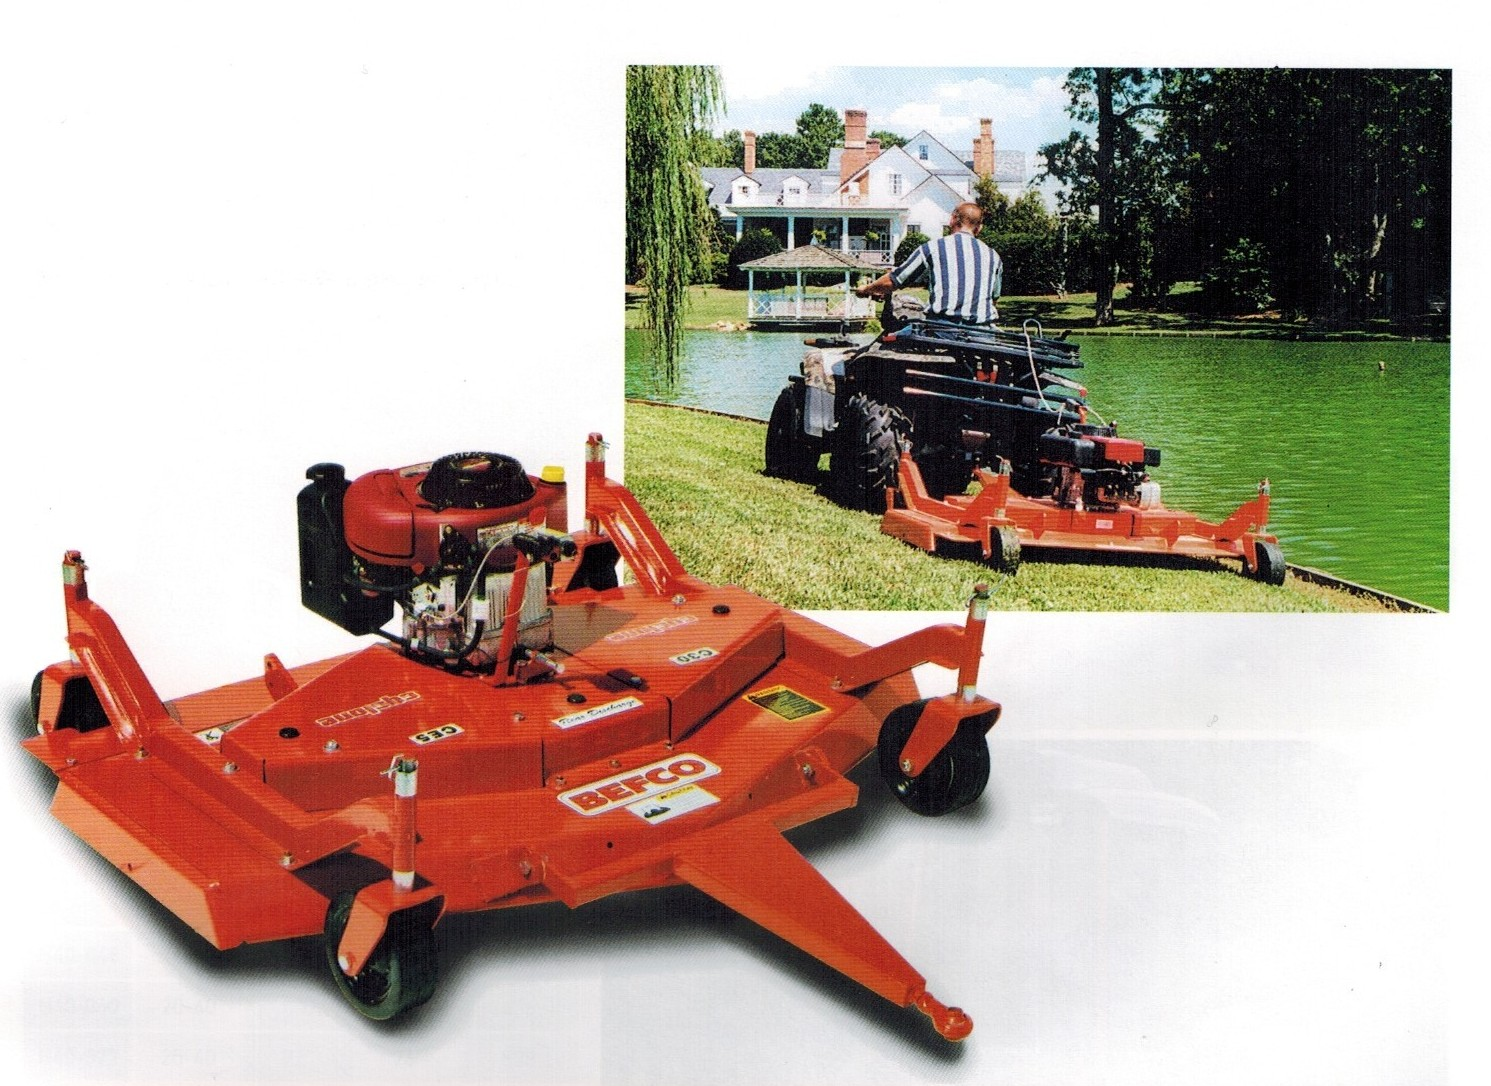 Engine Powered Tow Behind Atv Mowers